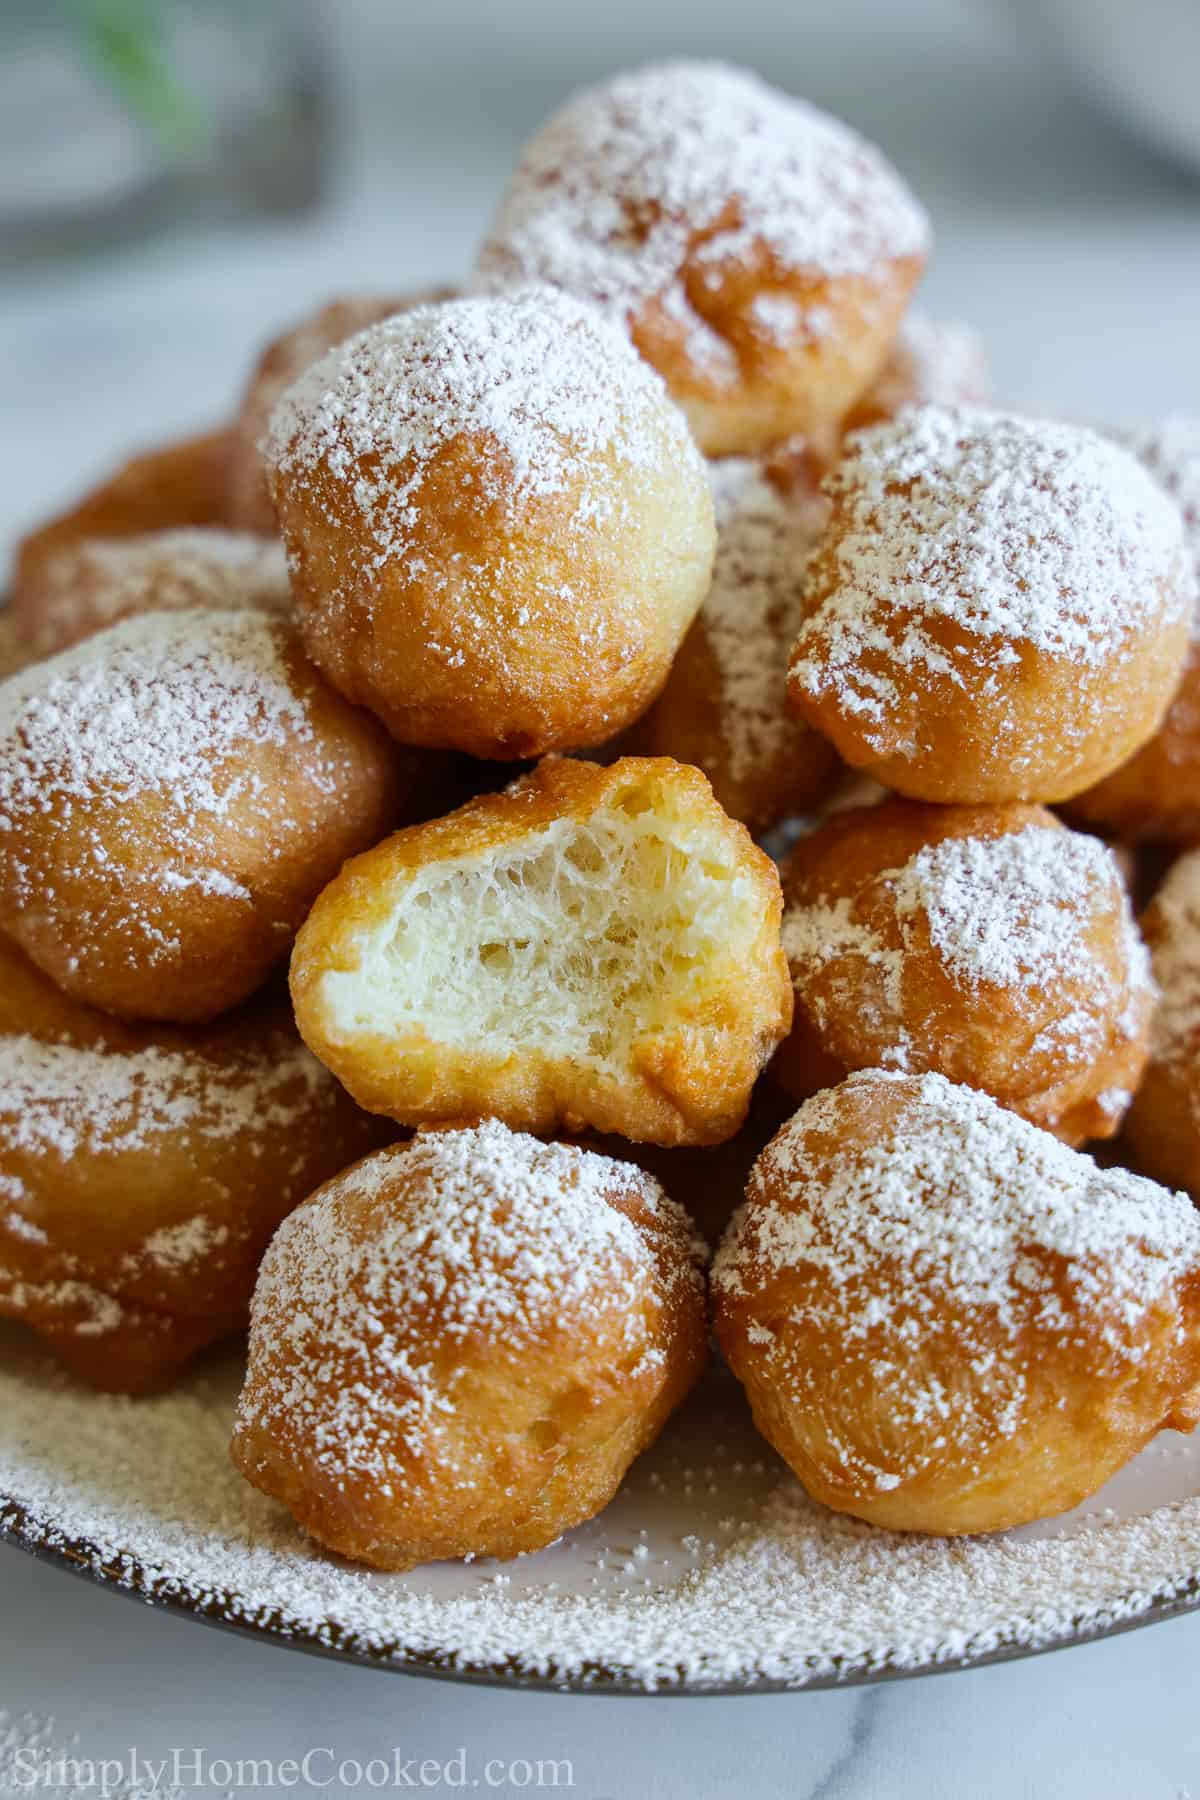 Close up of a pile of Zeppoles dusted with powdered sugar.